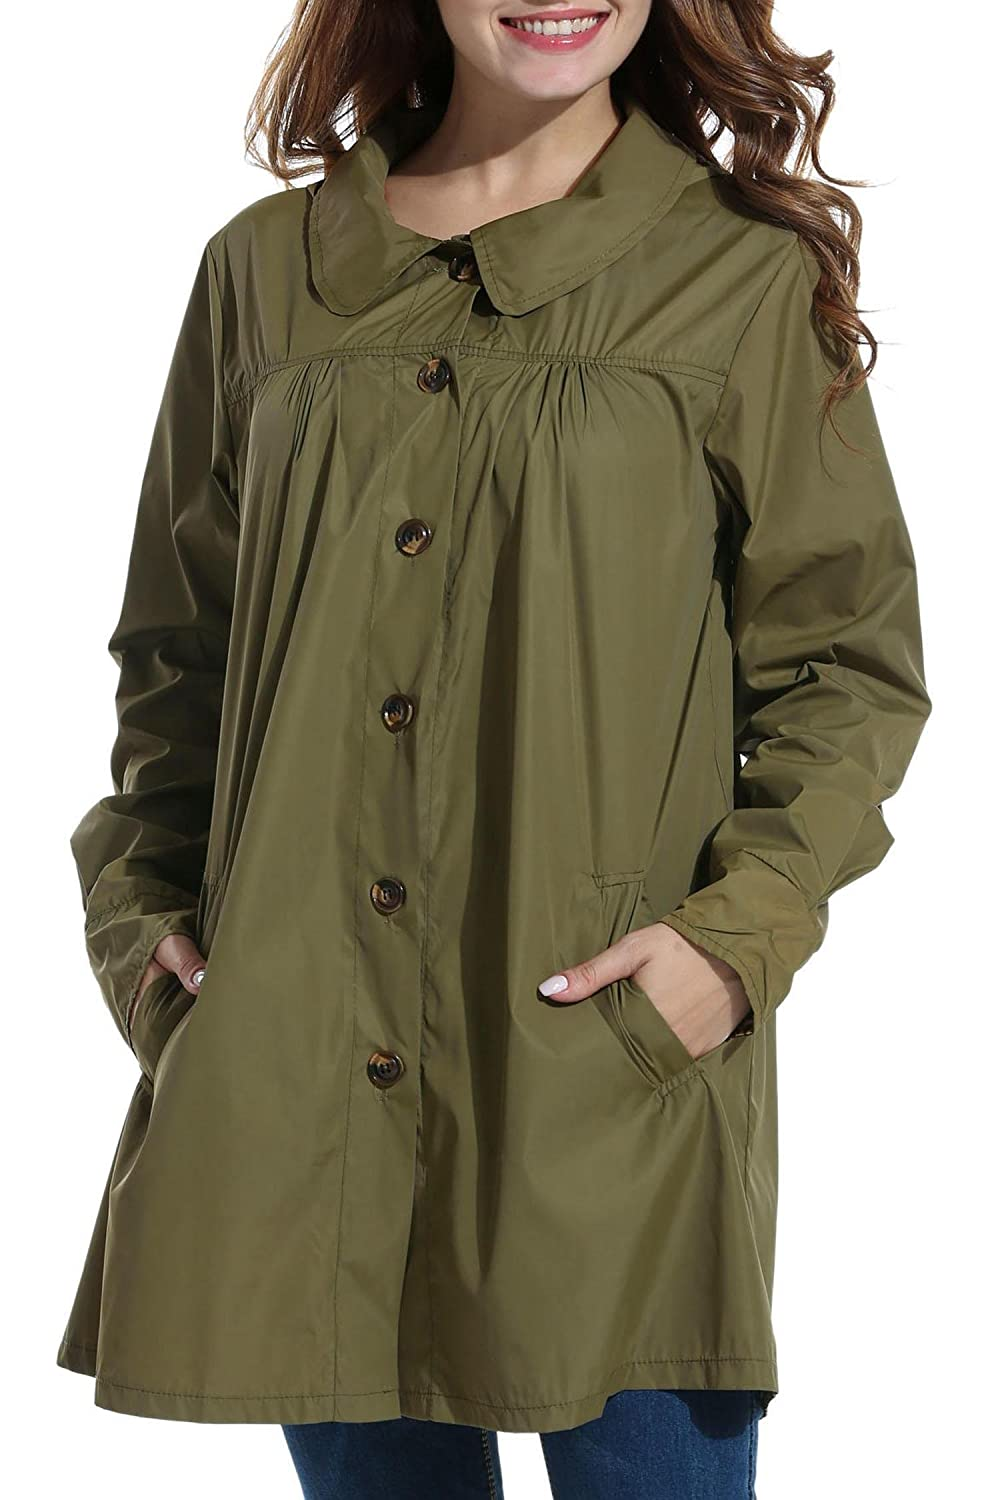 20c1d2eb7f0c Top 10 wholesale Ladies Army Jacket - Chinabrands.com